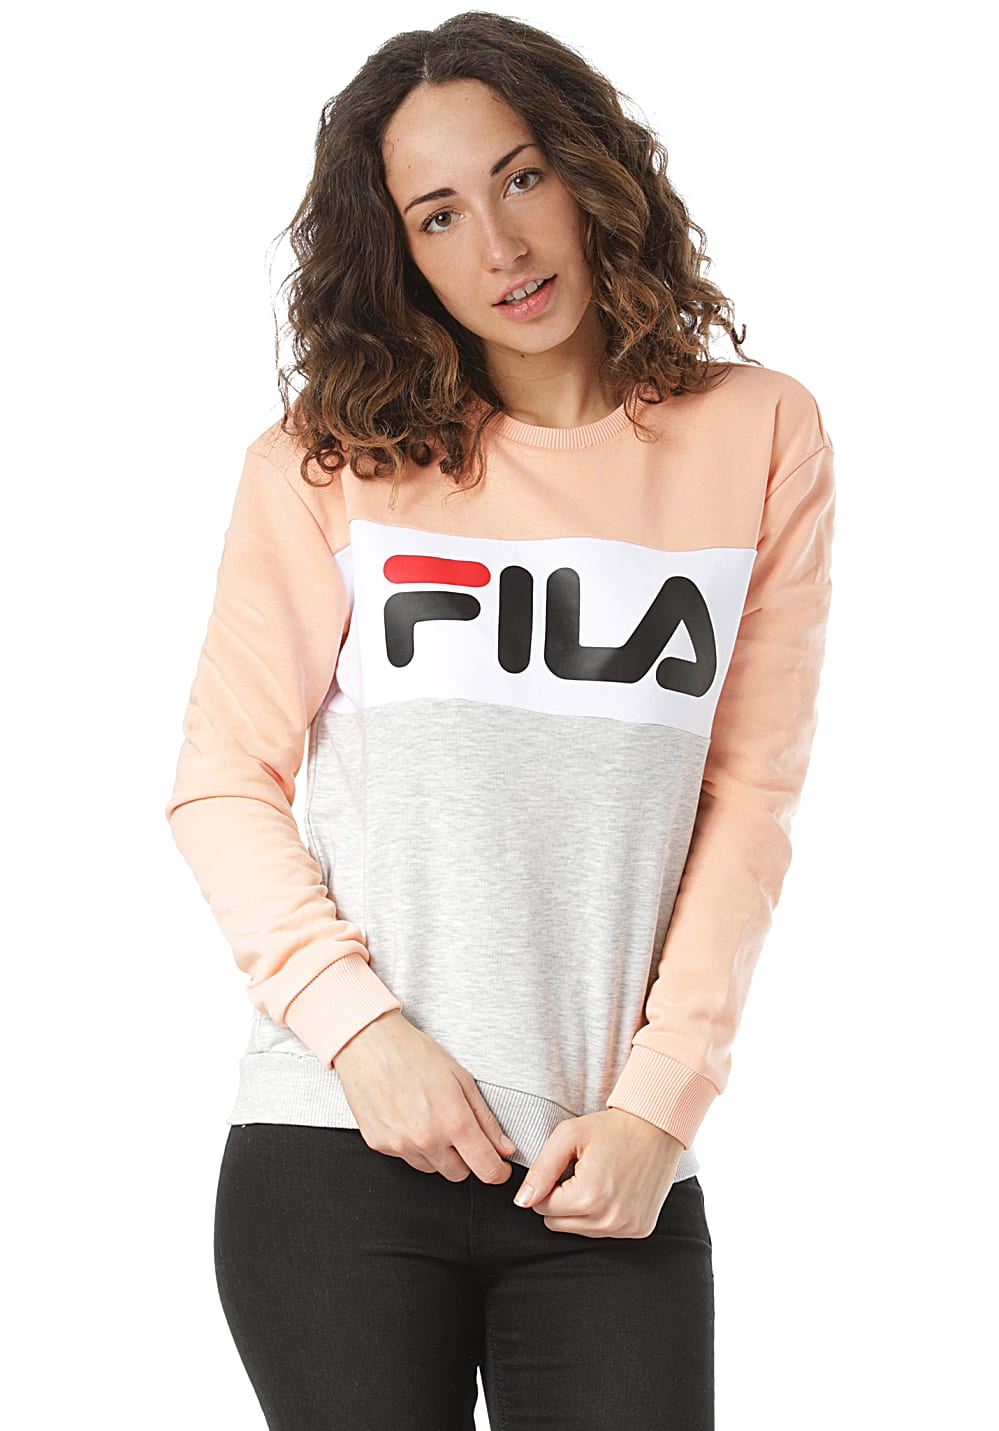 Fila Leah - Sweatshirt für Damen - Grau - Planet Sports